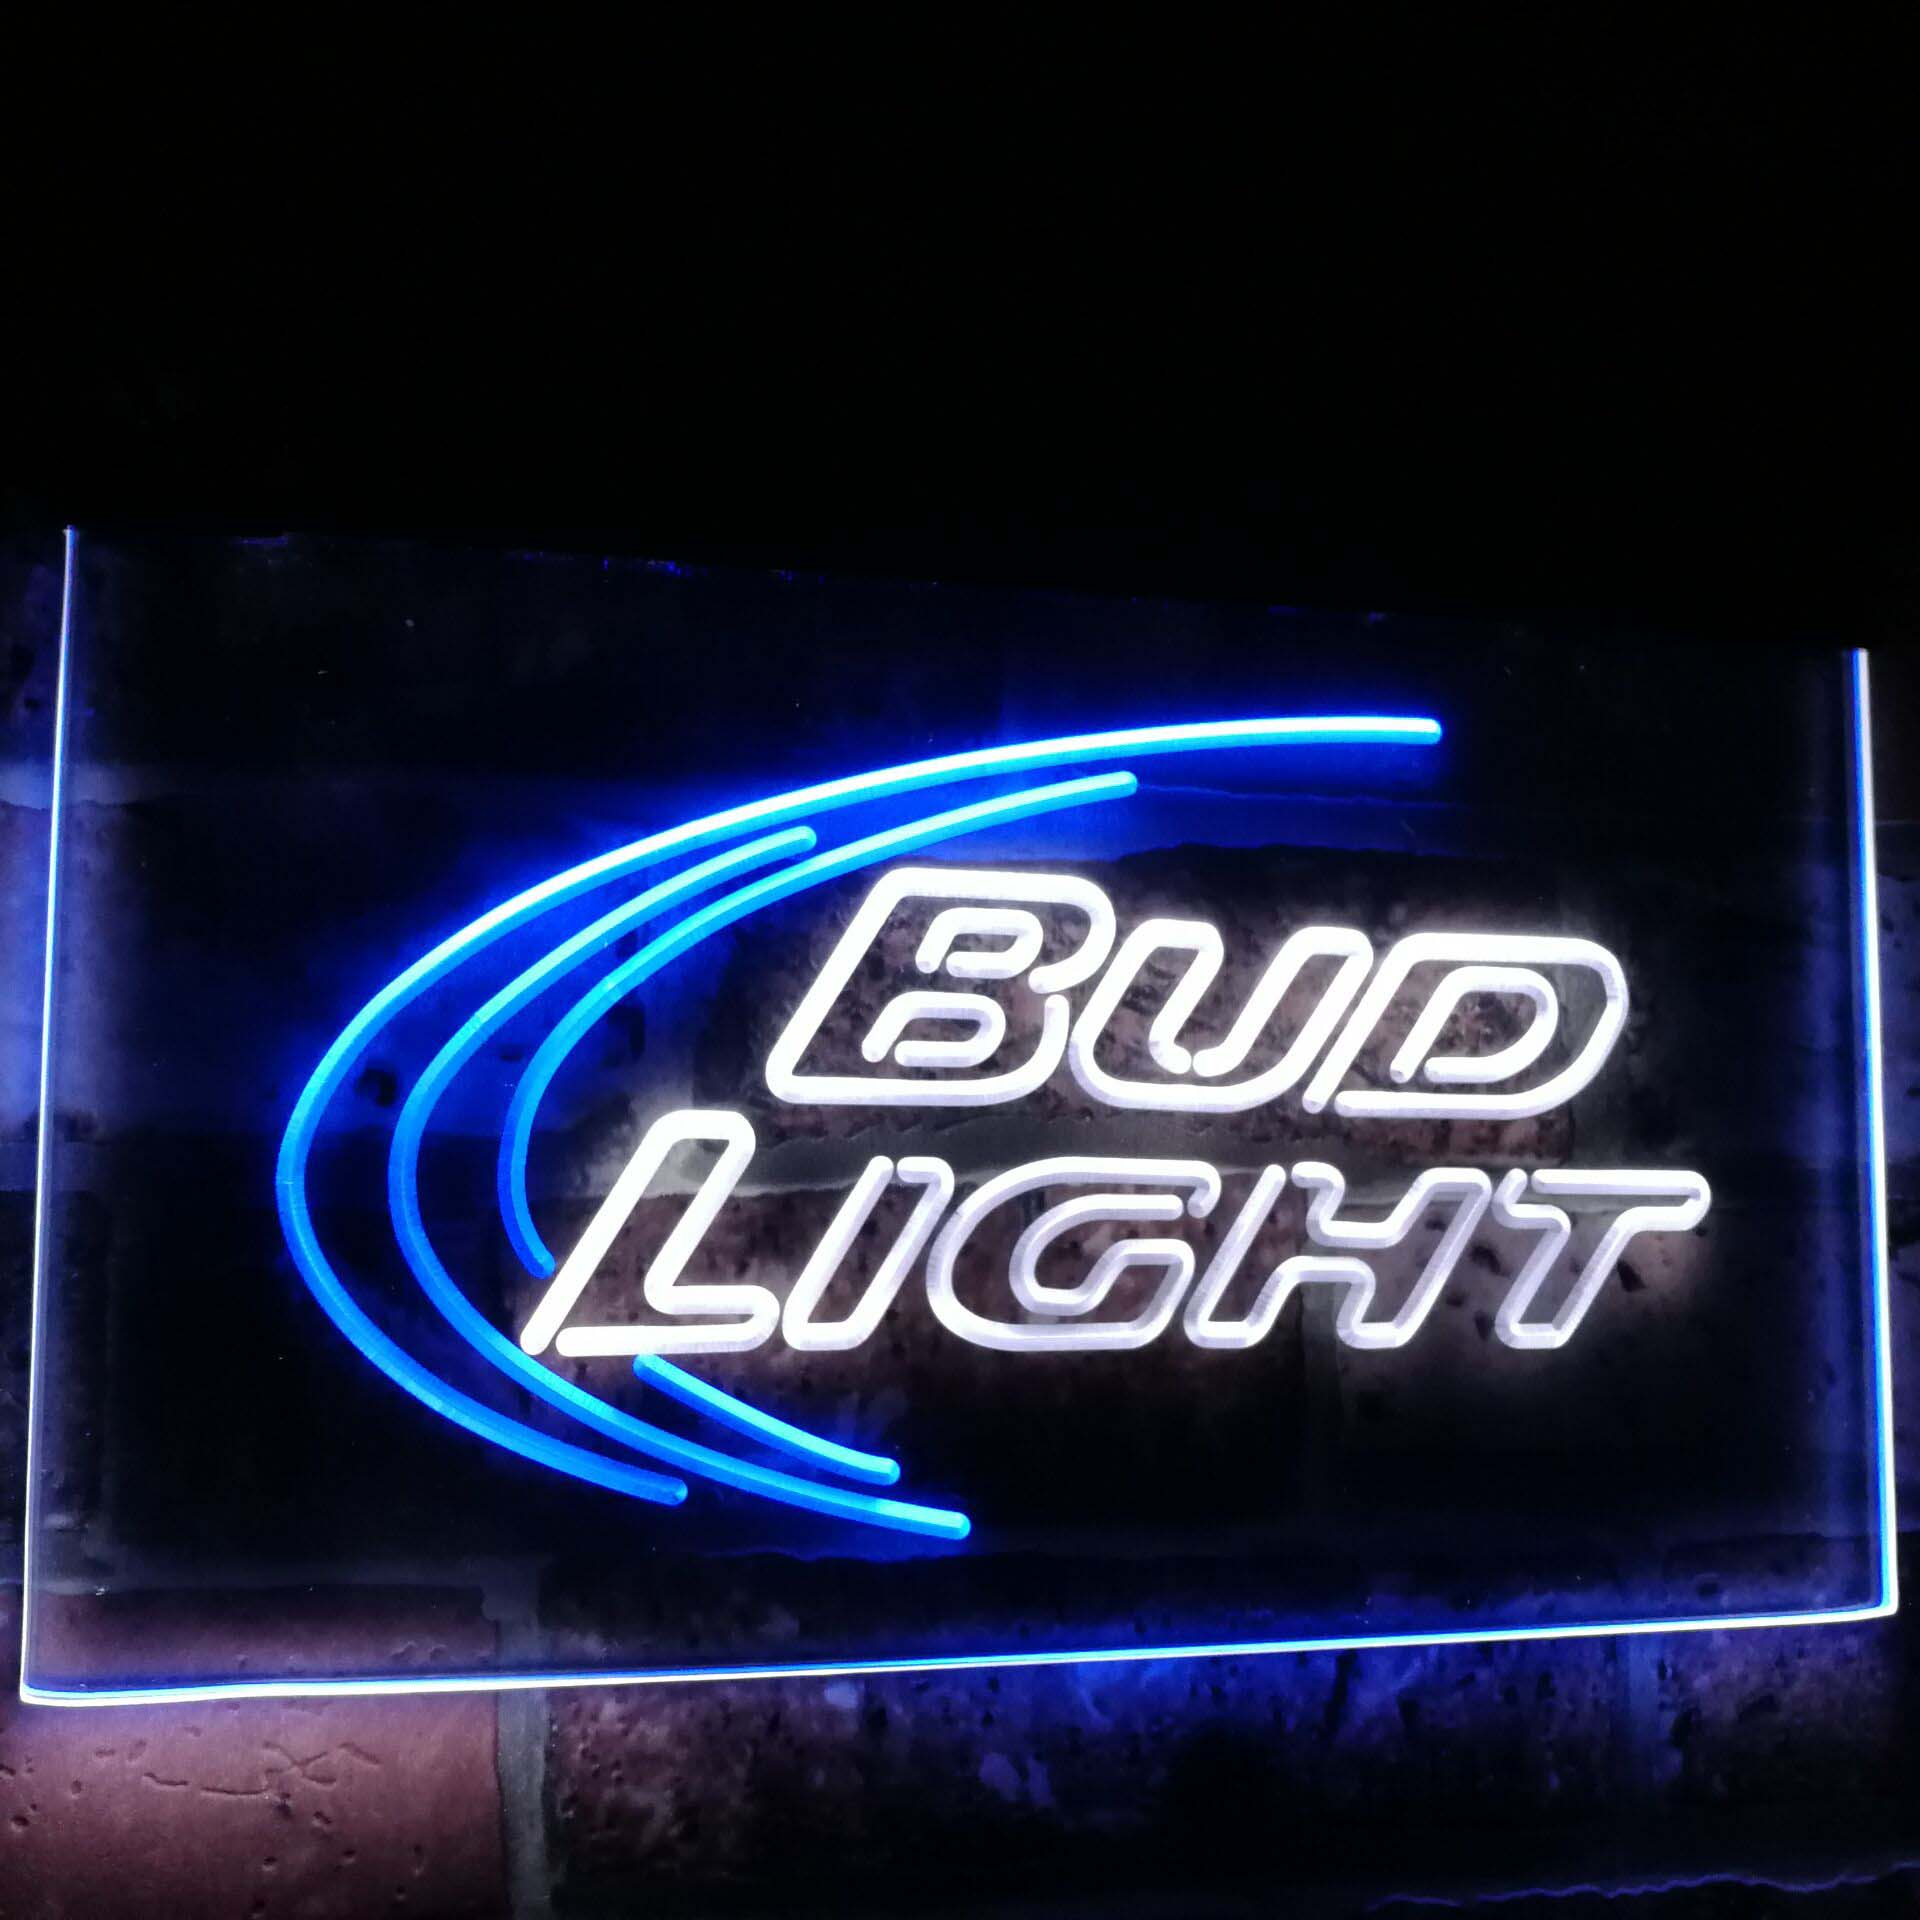 Bud Light Beer Ice Bar Decoration Gift Dual Color Led Neon Sign st6 a2003